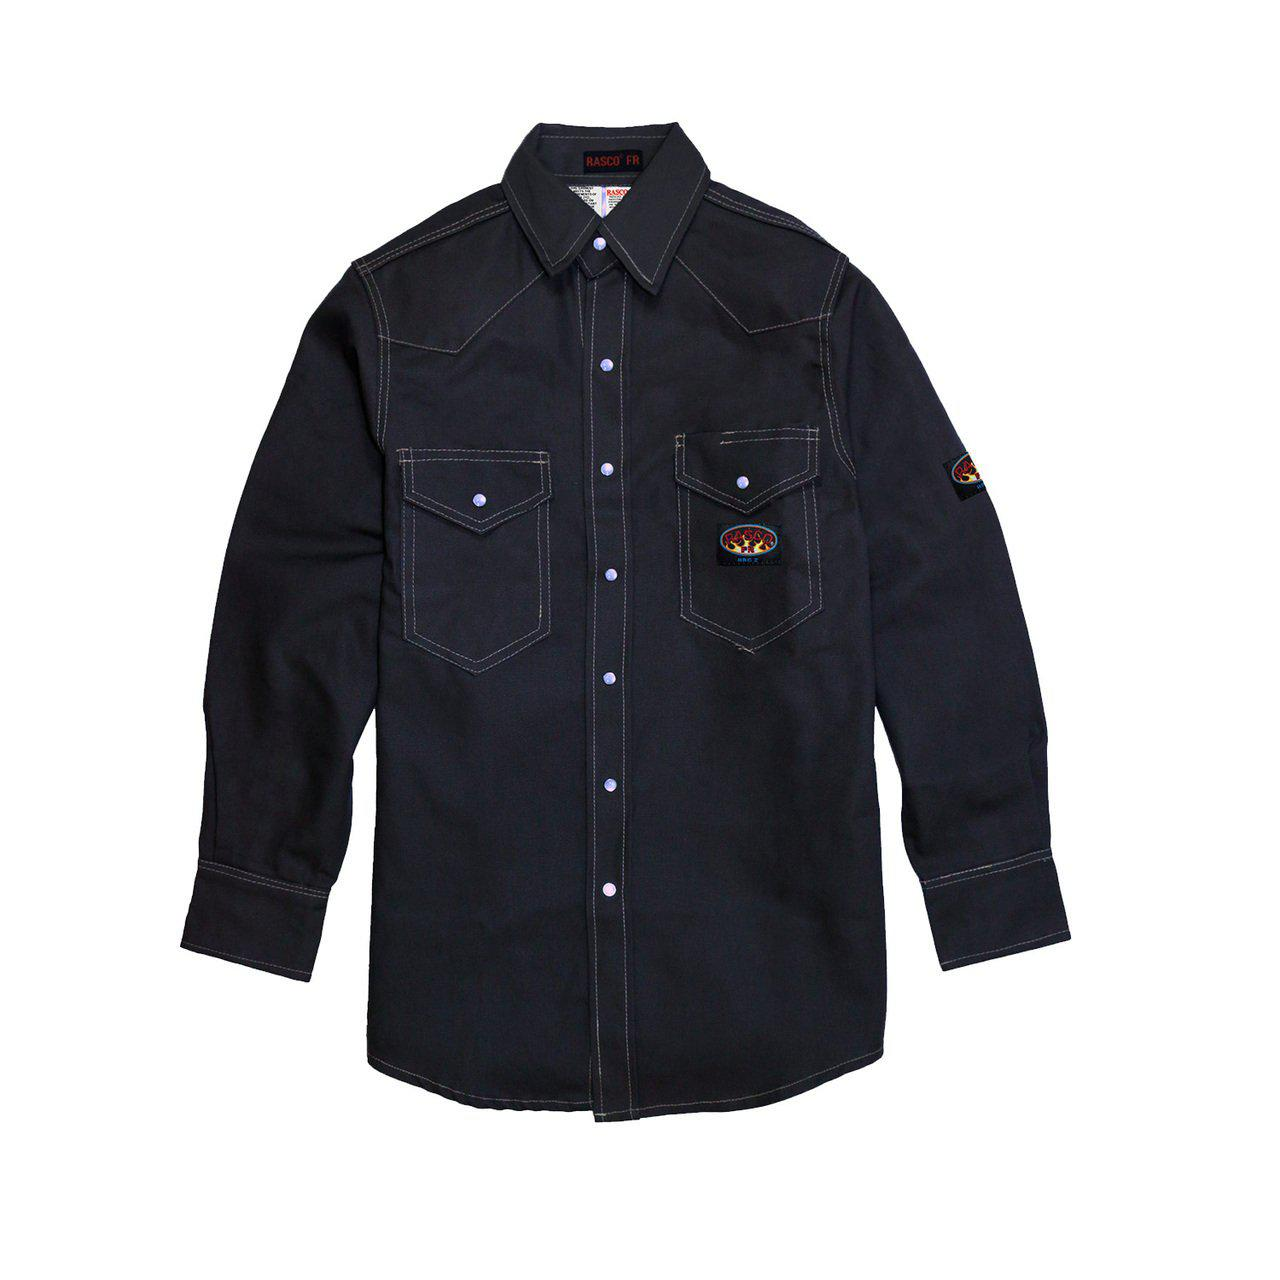 Rasco FR Navy Uniform Shirt